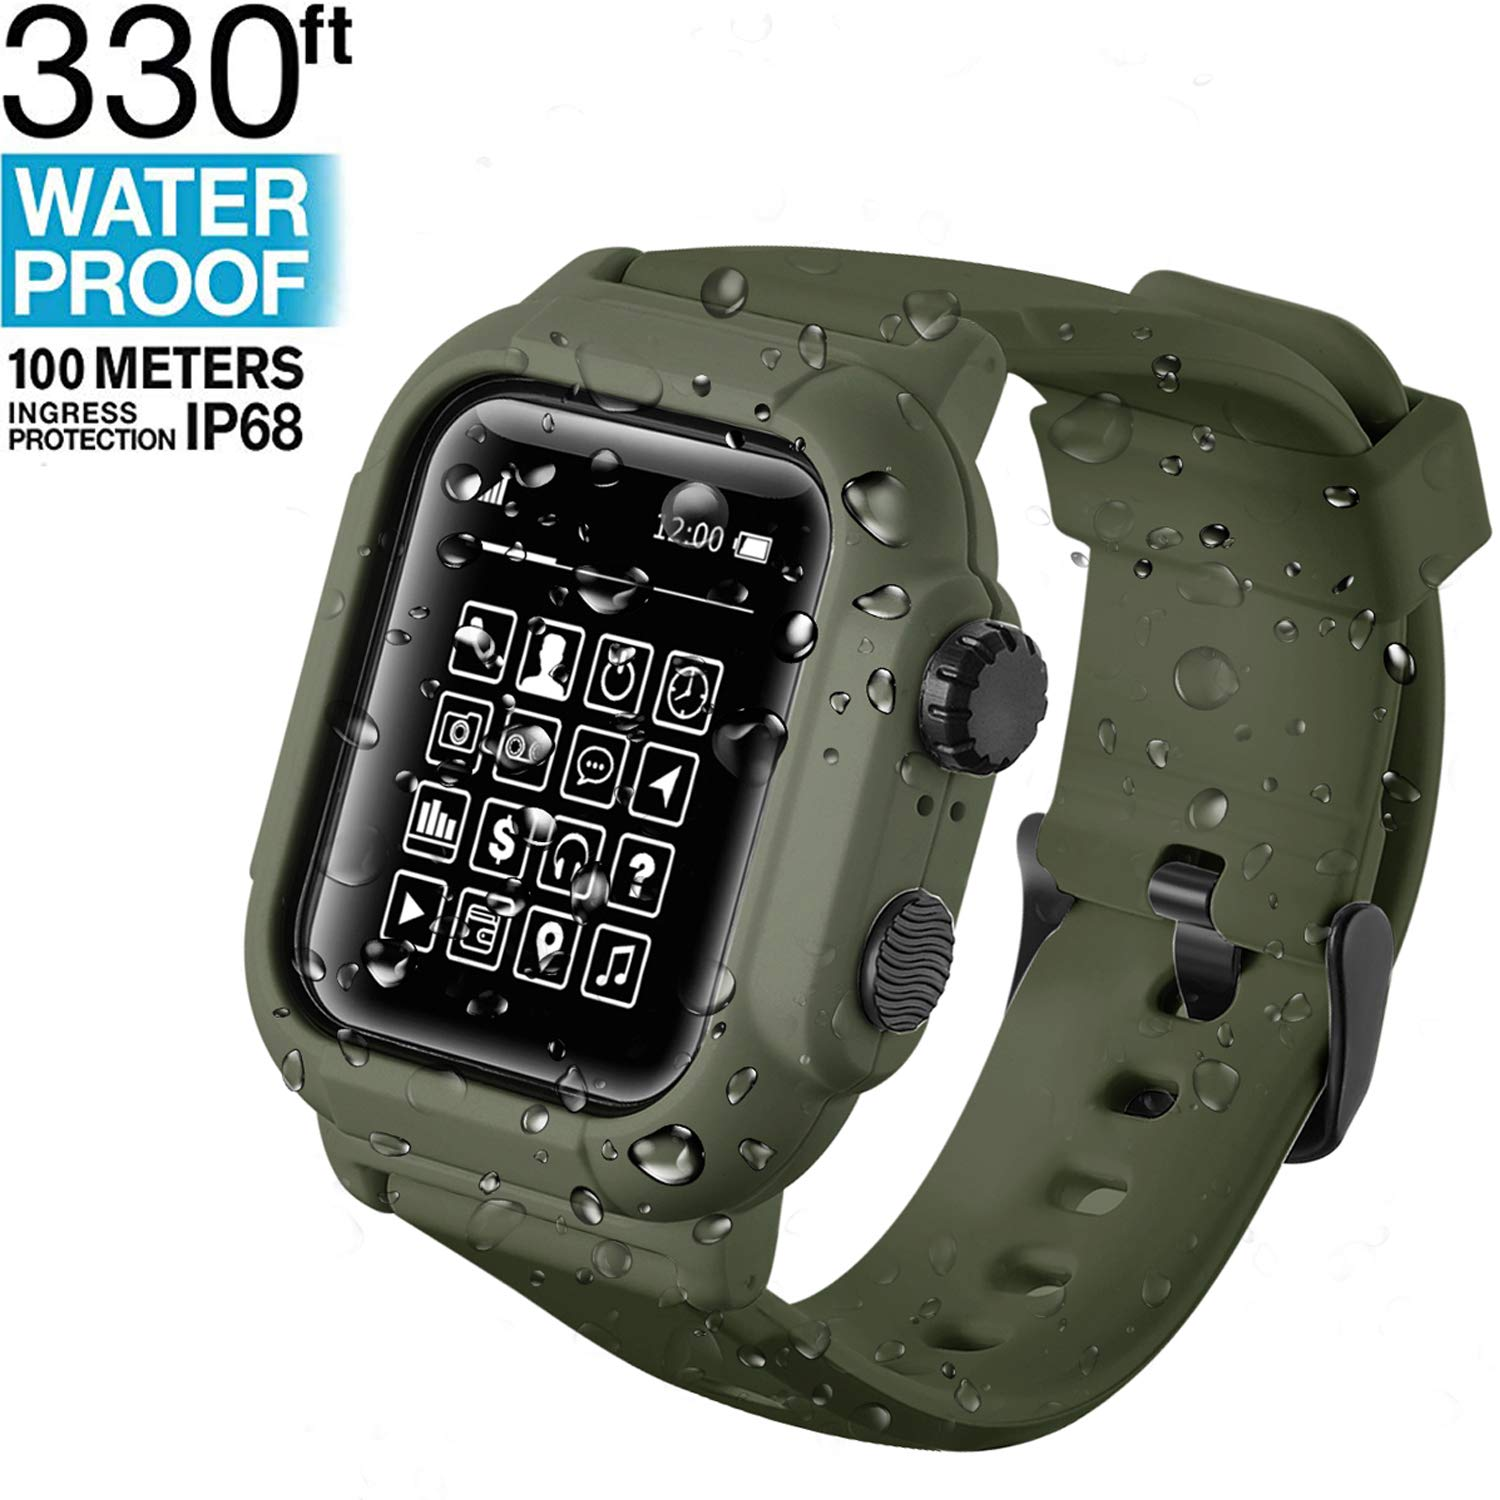 Waterproof Apple Watch Case Series 42mm 44mm with Premium Soft Silicone Apple Watch Band, Shock Proof Impact Resistant [Rugged iWatch Protective case] (Army Green, 44)